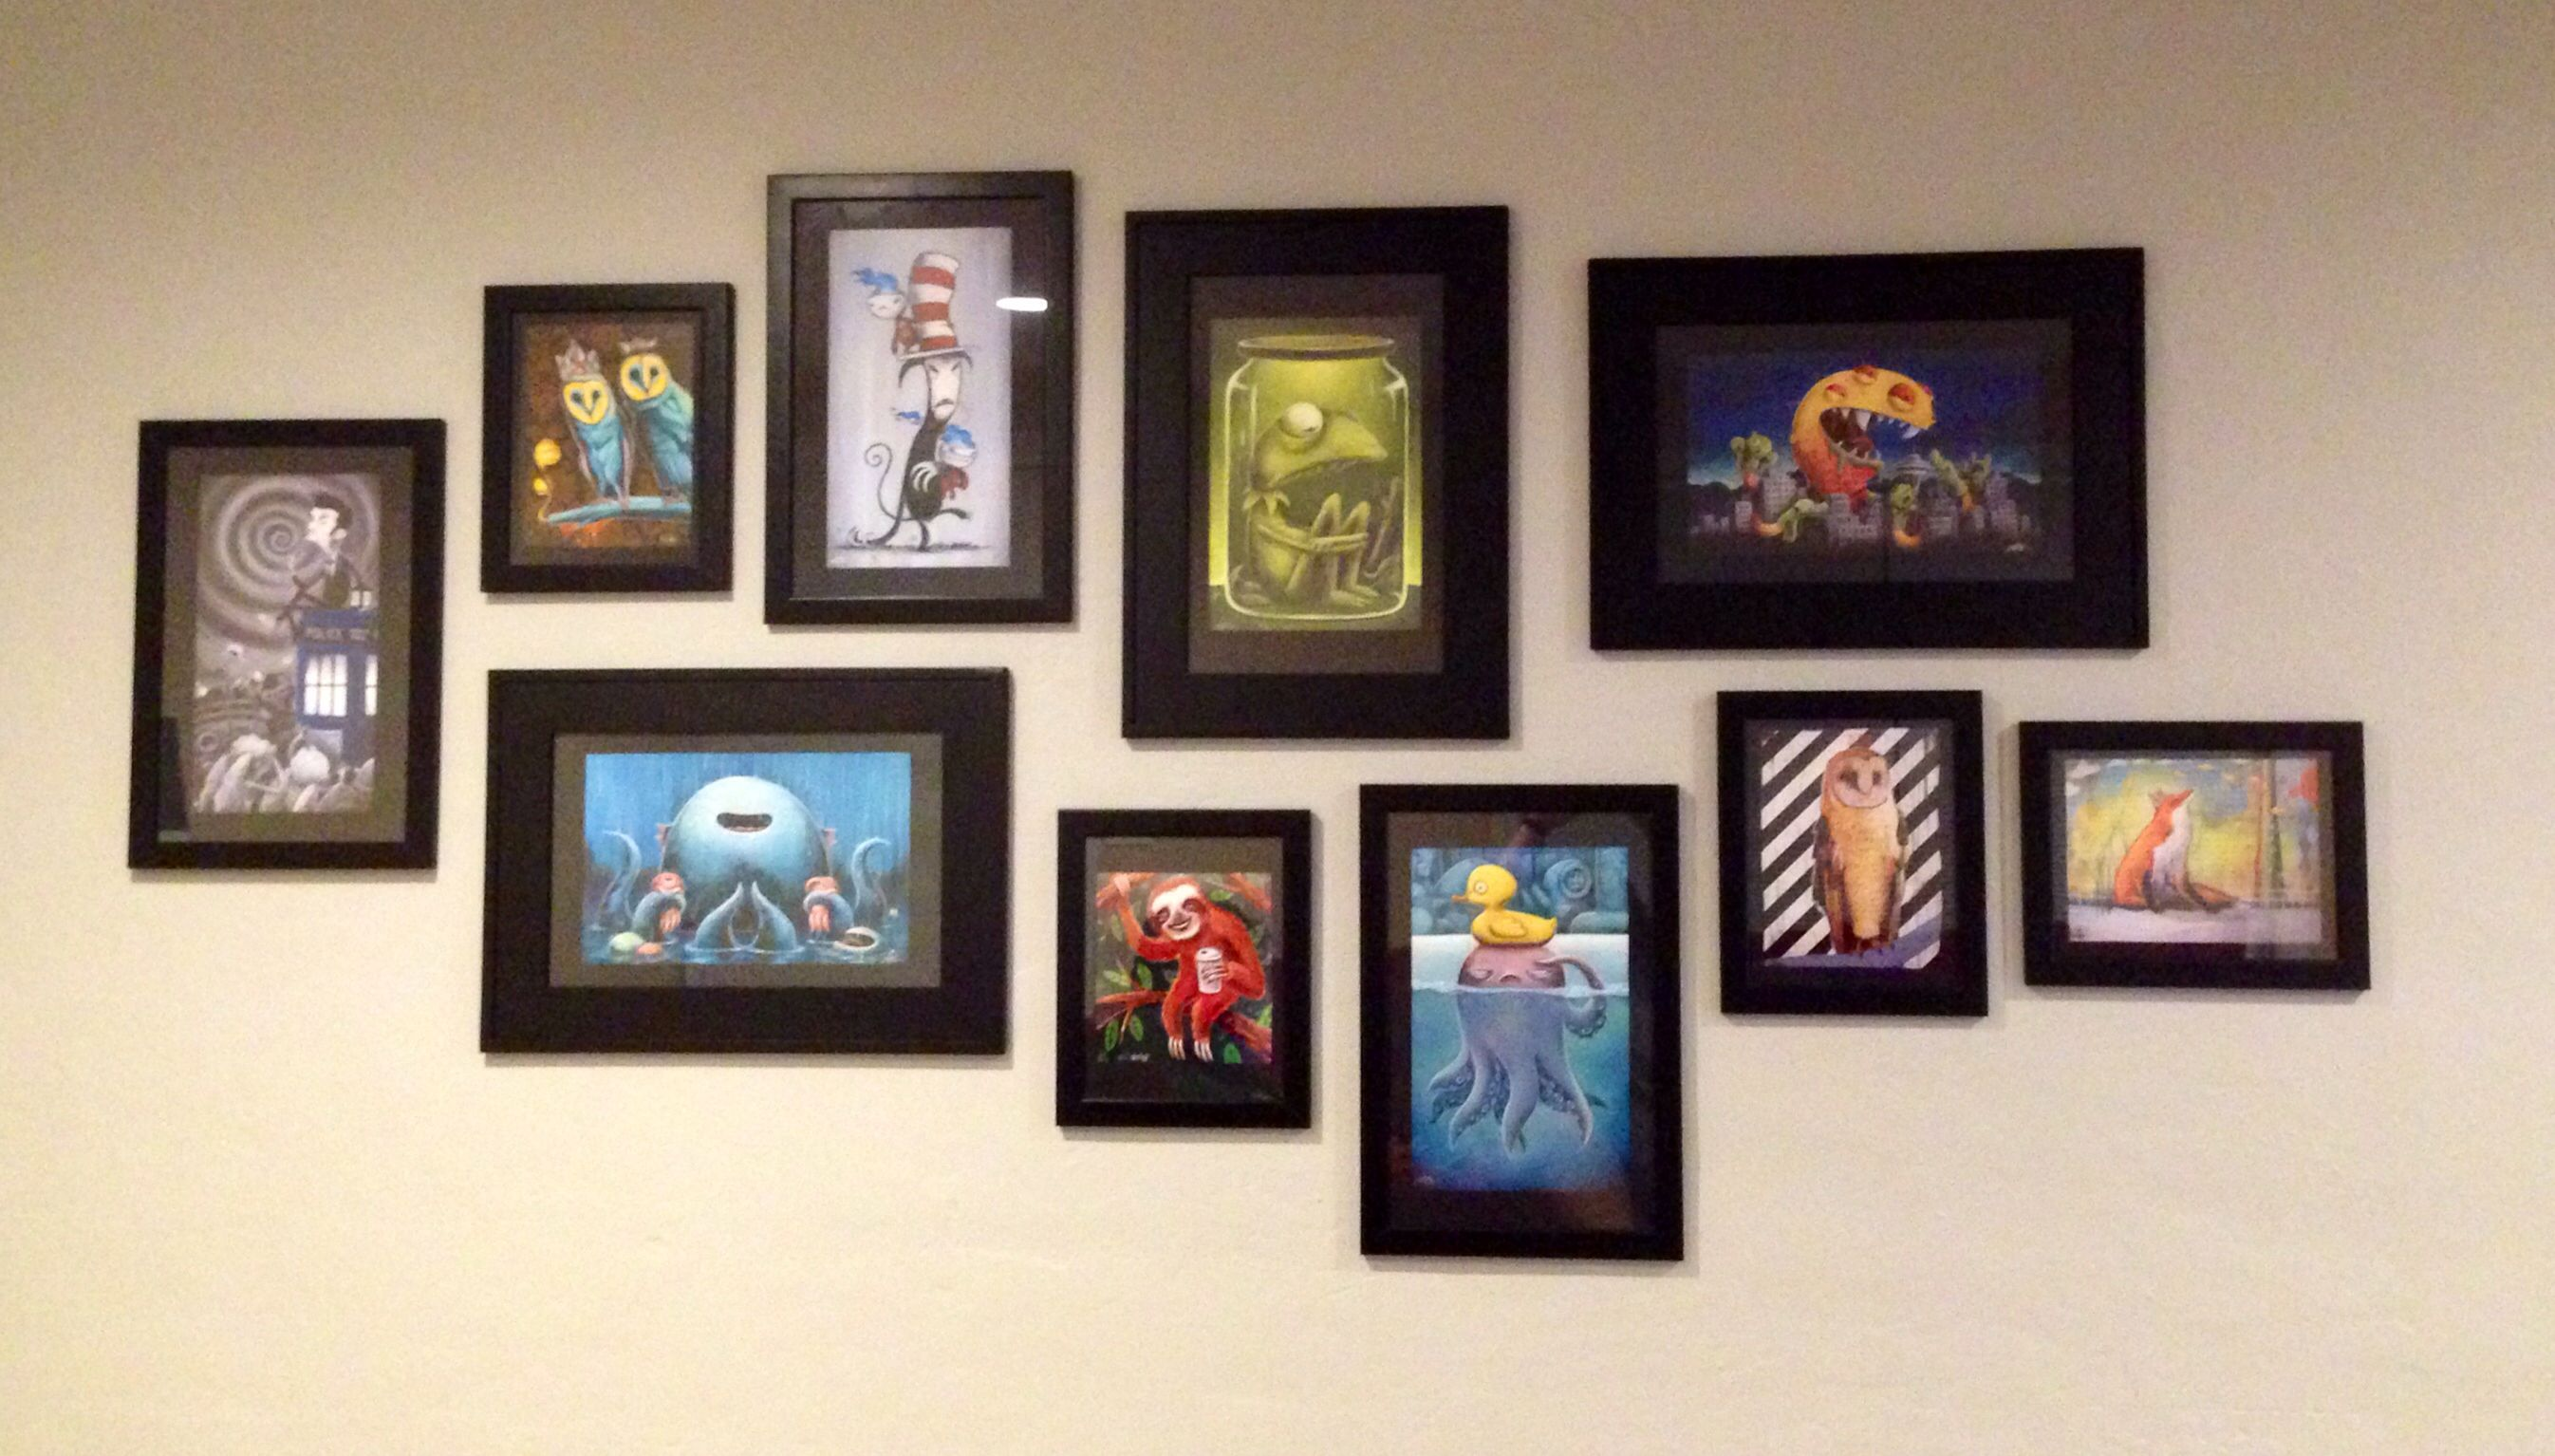 My First Gallery Art Wall All Prints Are By Local